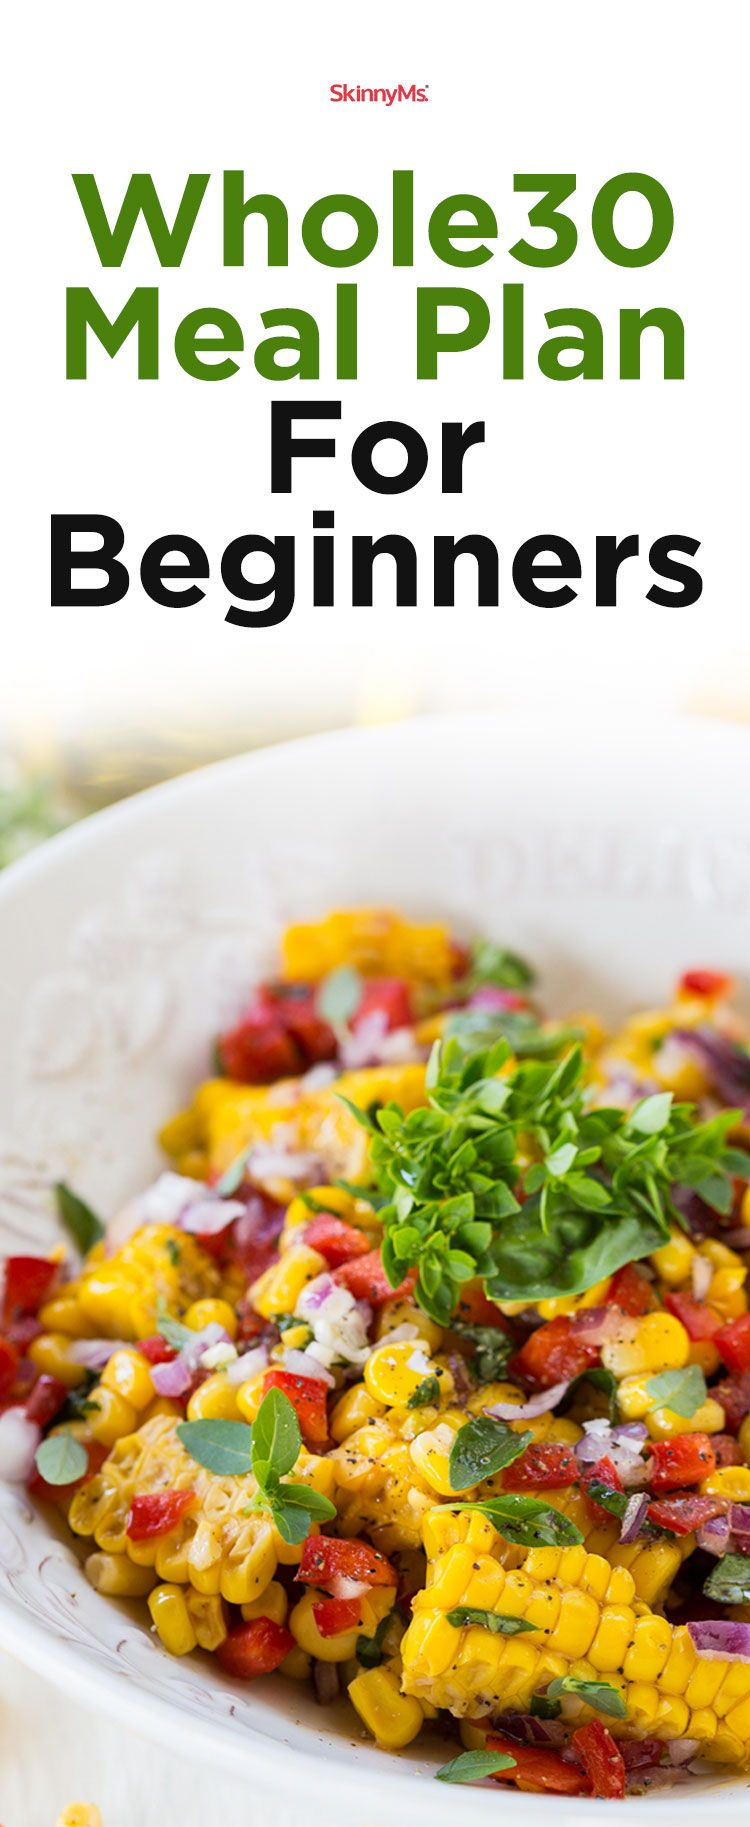 Whole30 Meal Plan For Beginners Whole 30 meal plan